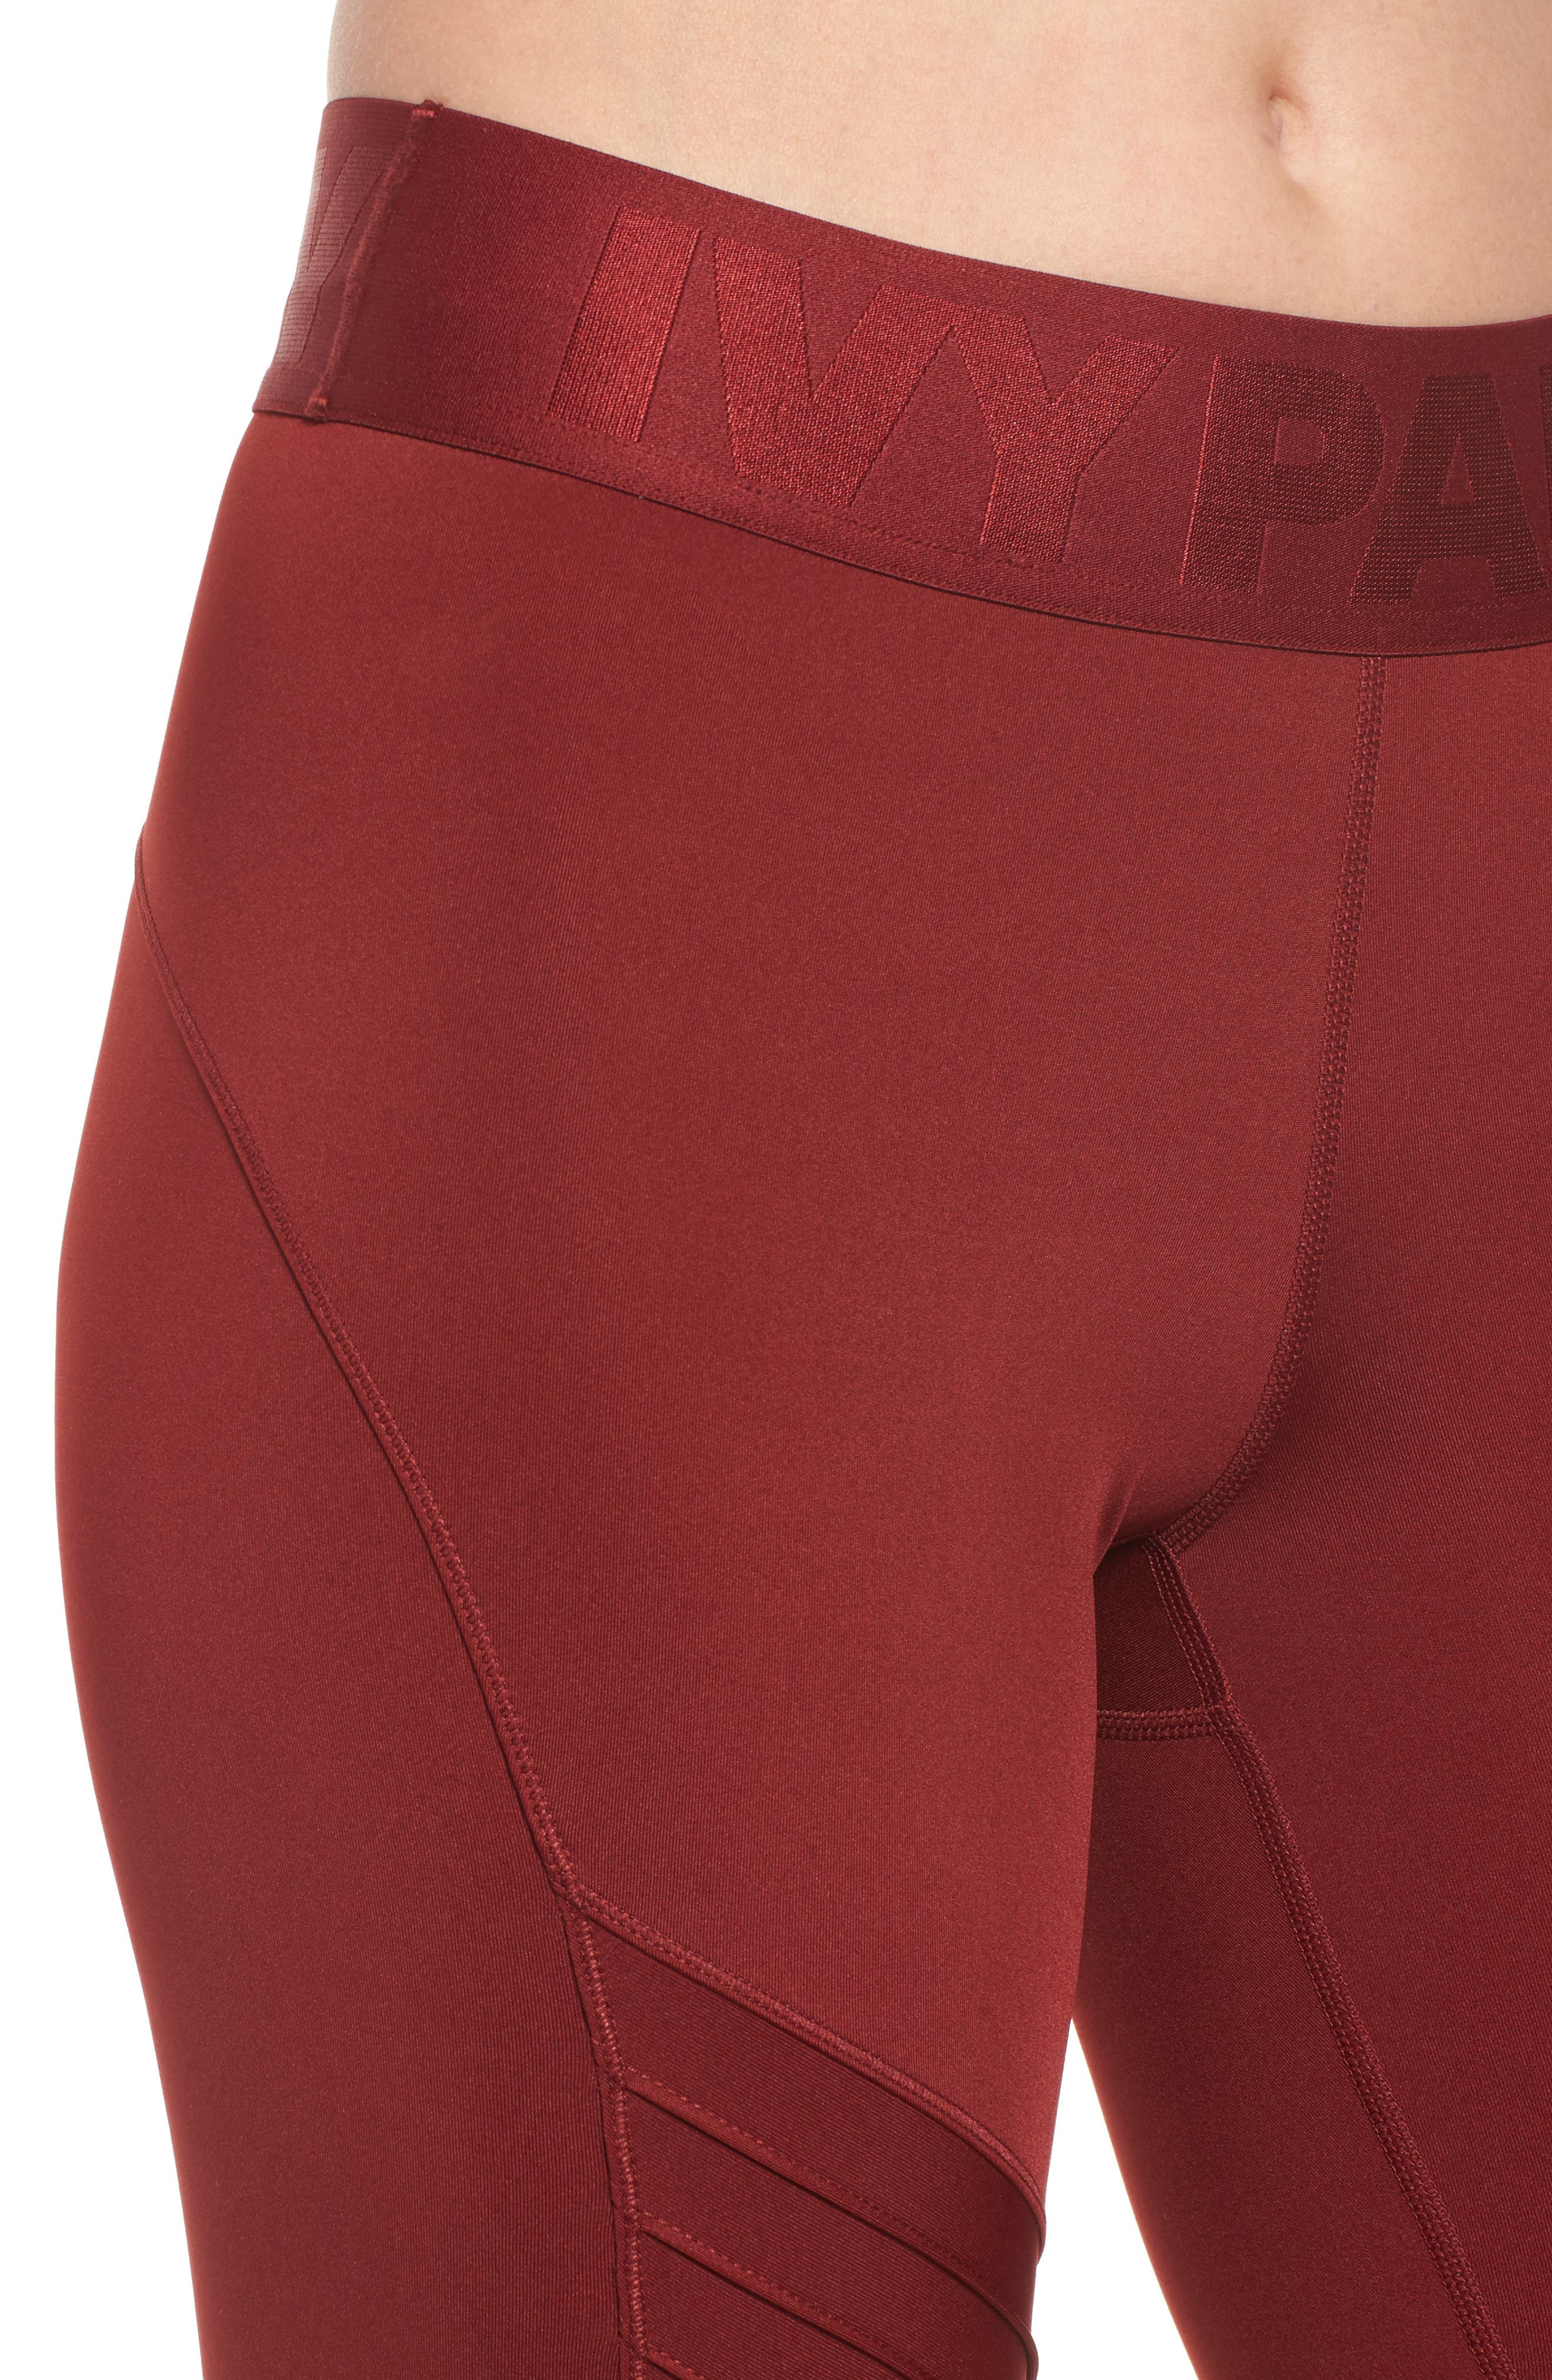 Pintuck Leggings,                             Alternate thumbnail 7, color,                             Russet